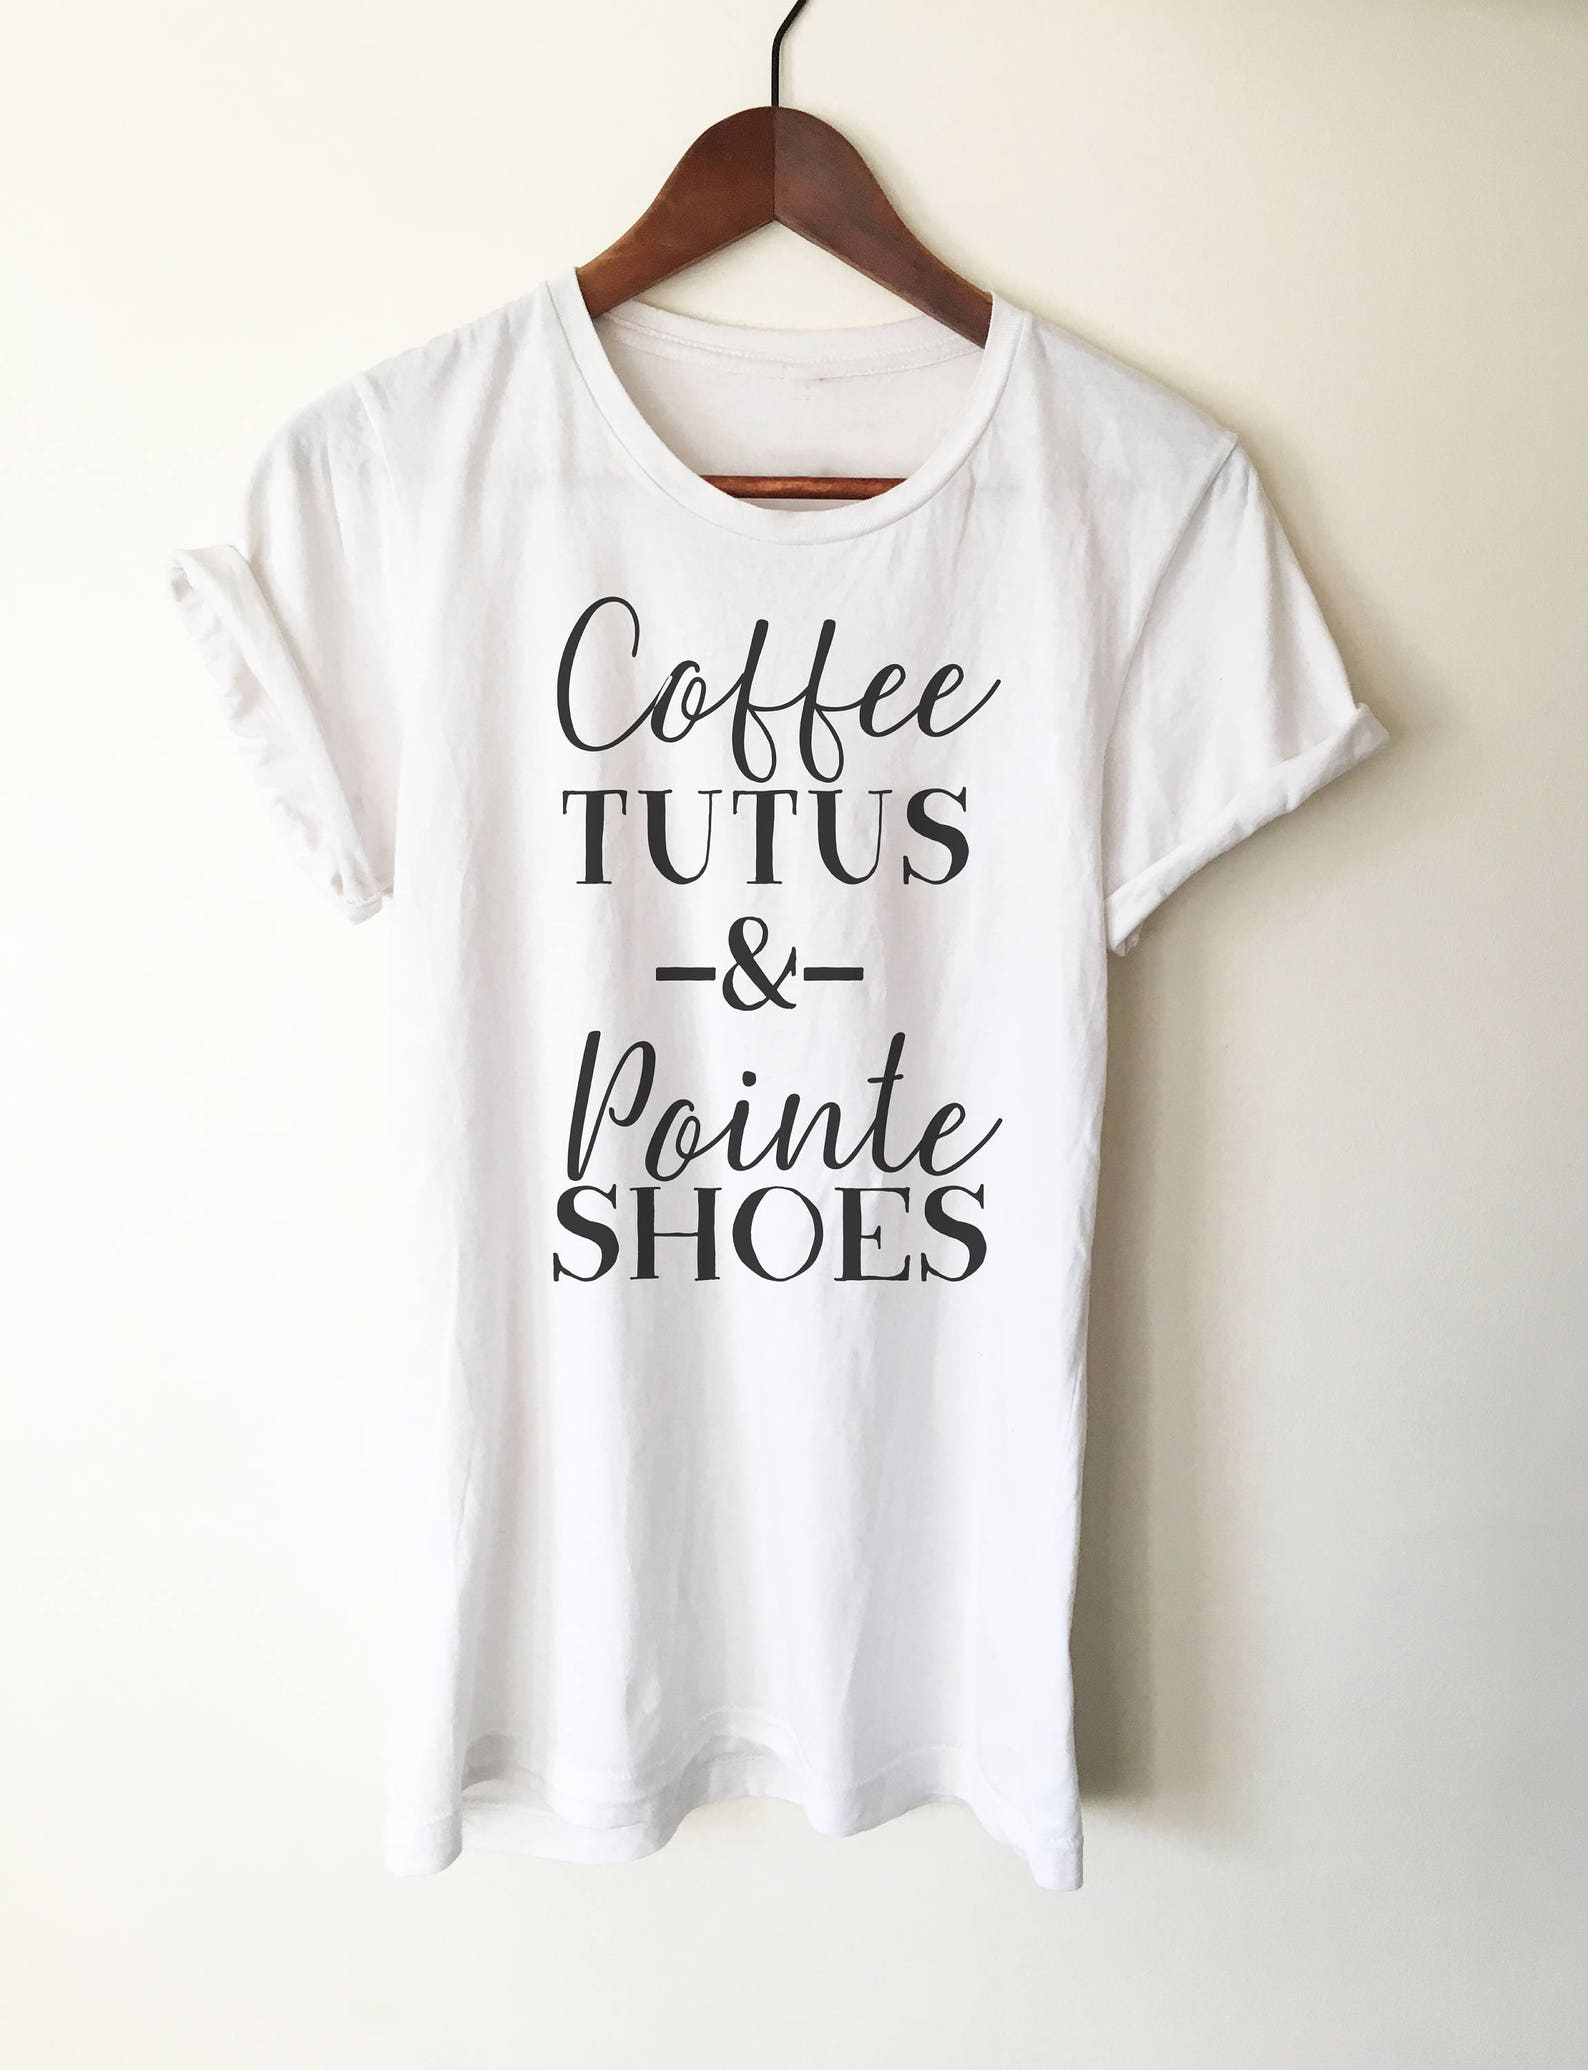 coffee tutus & pointé shoes shoes unisex shirt | ballet shirt | dance shirt | ballerina shirt | ballet | ballerina | dancer gift